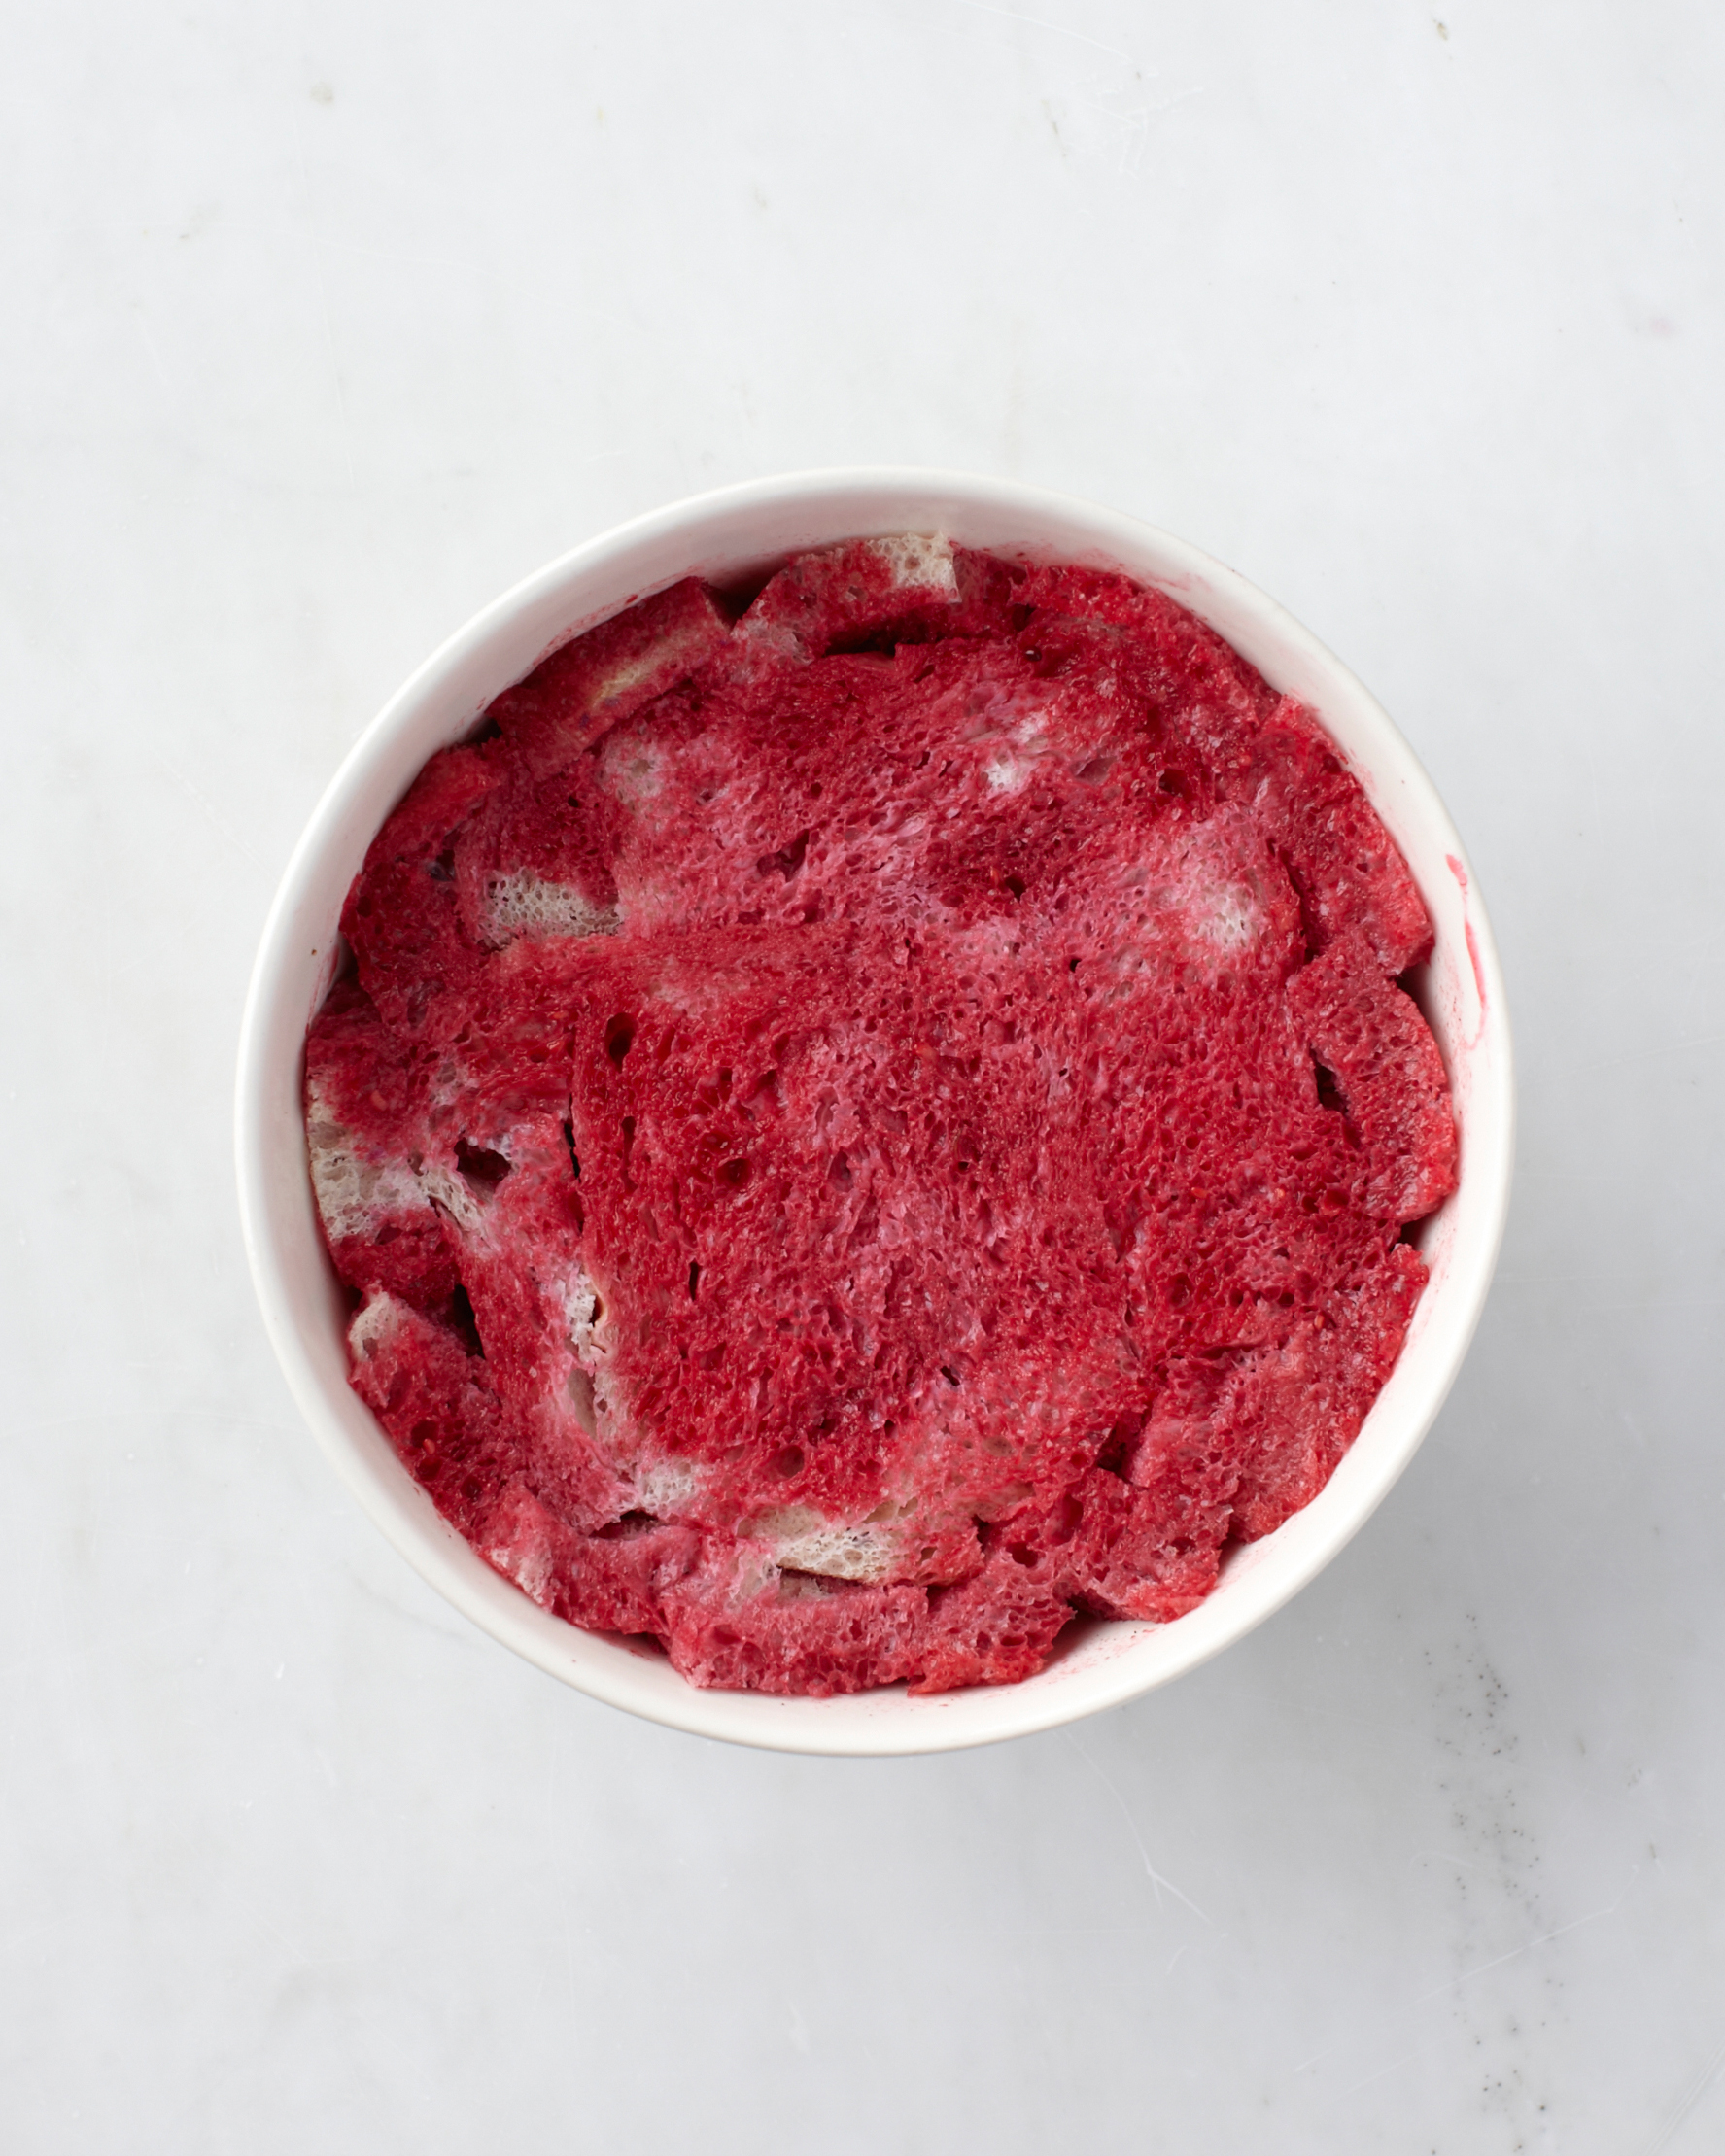 summer-berry-pudding-how-to-019-ld110518-0714.jpg